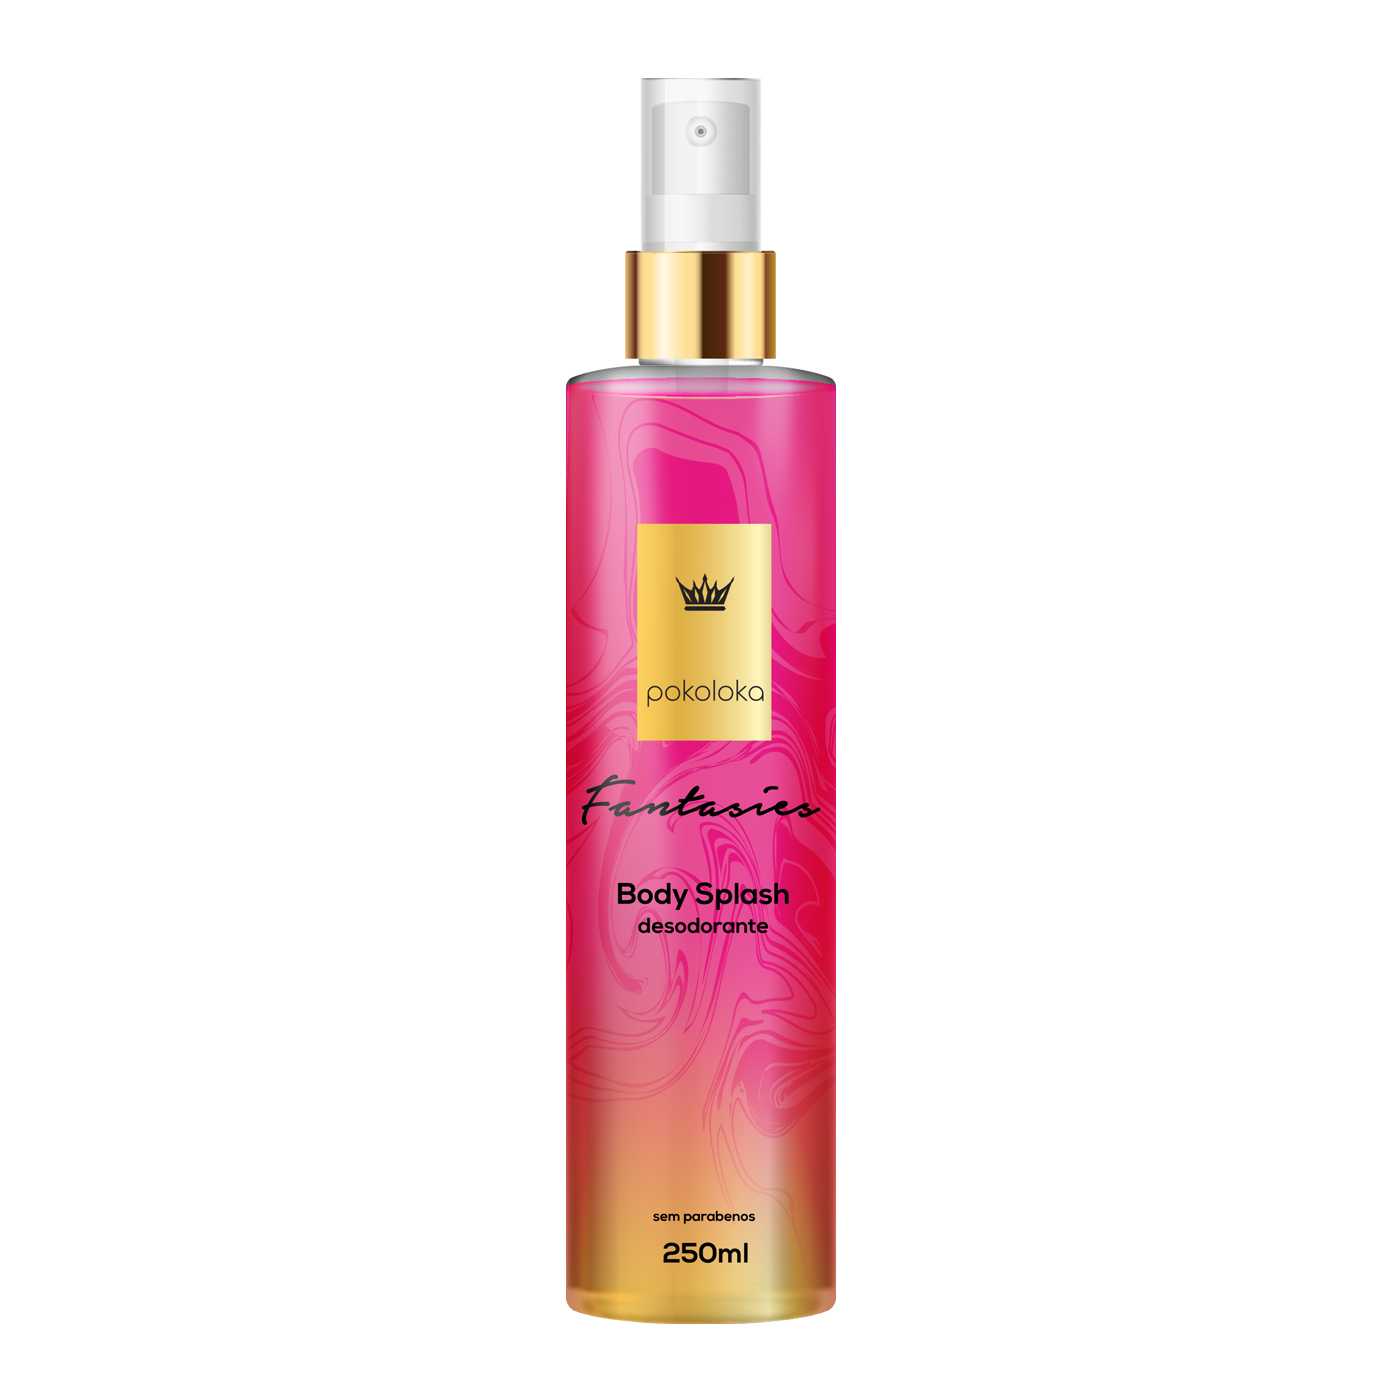 Body Splash Perfumado Fantasies Pokaloka 250ml